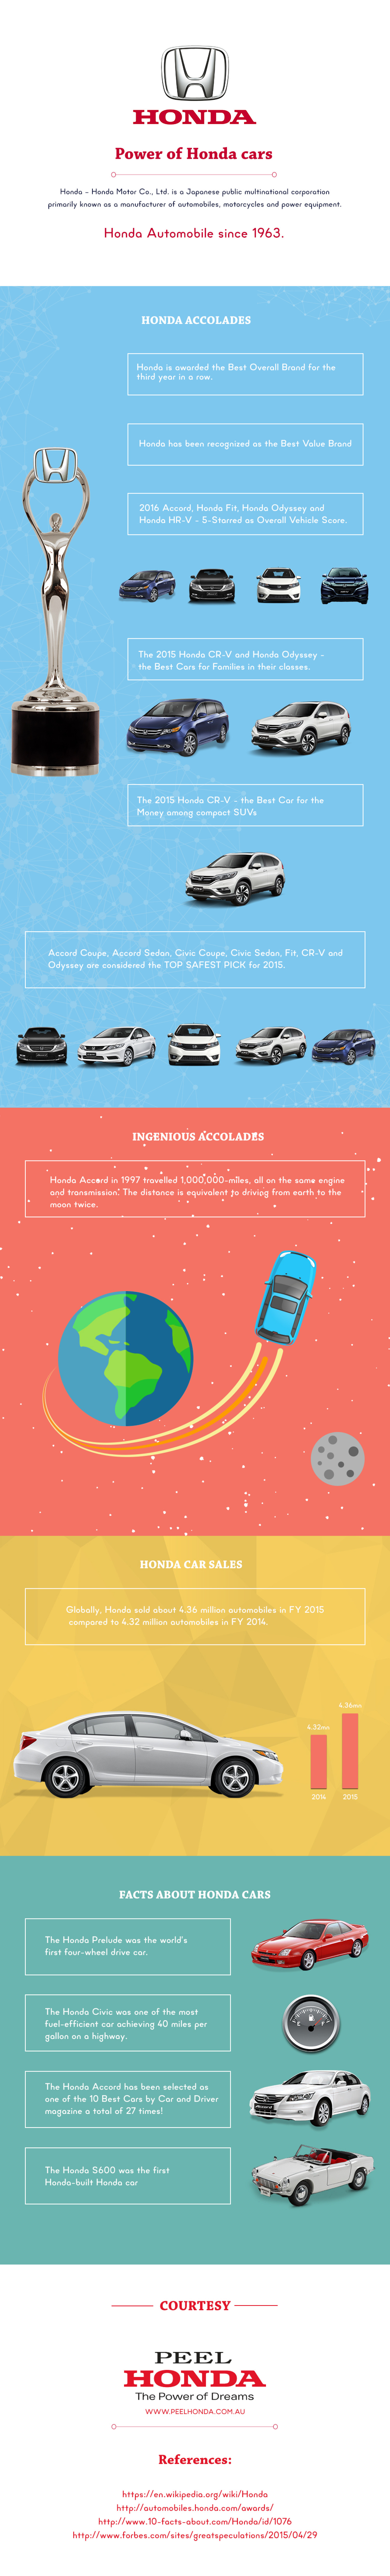 What No One Is Told About Honda Cars Infographic